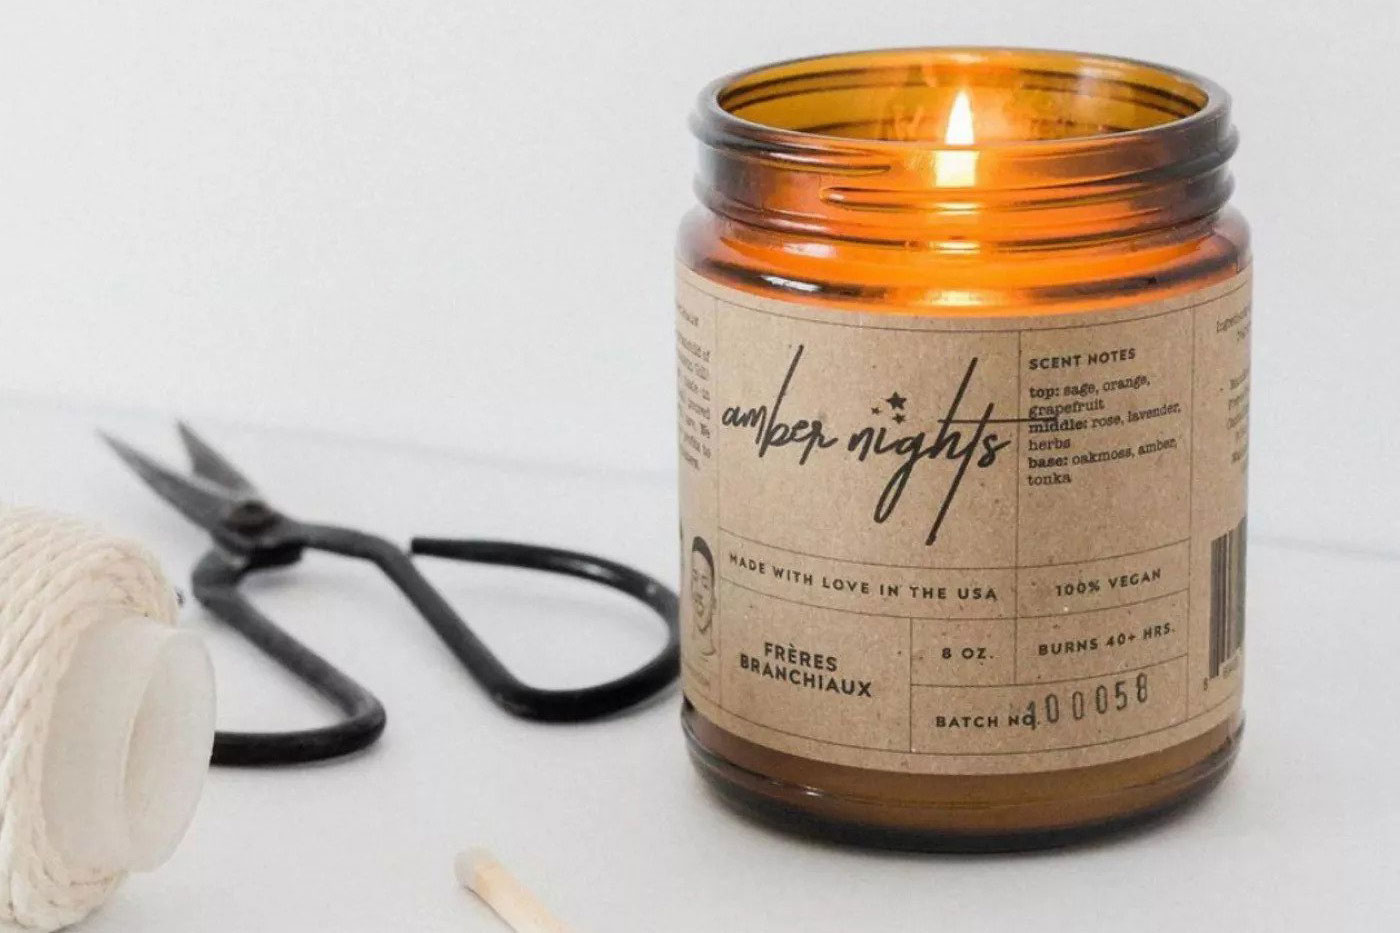 Freres Branchiaux Amber Nights Candle